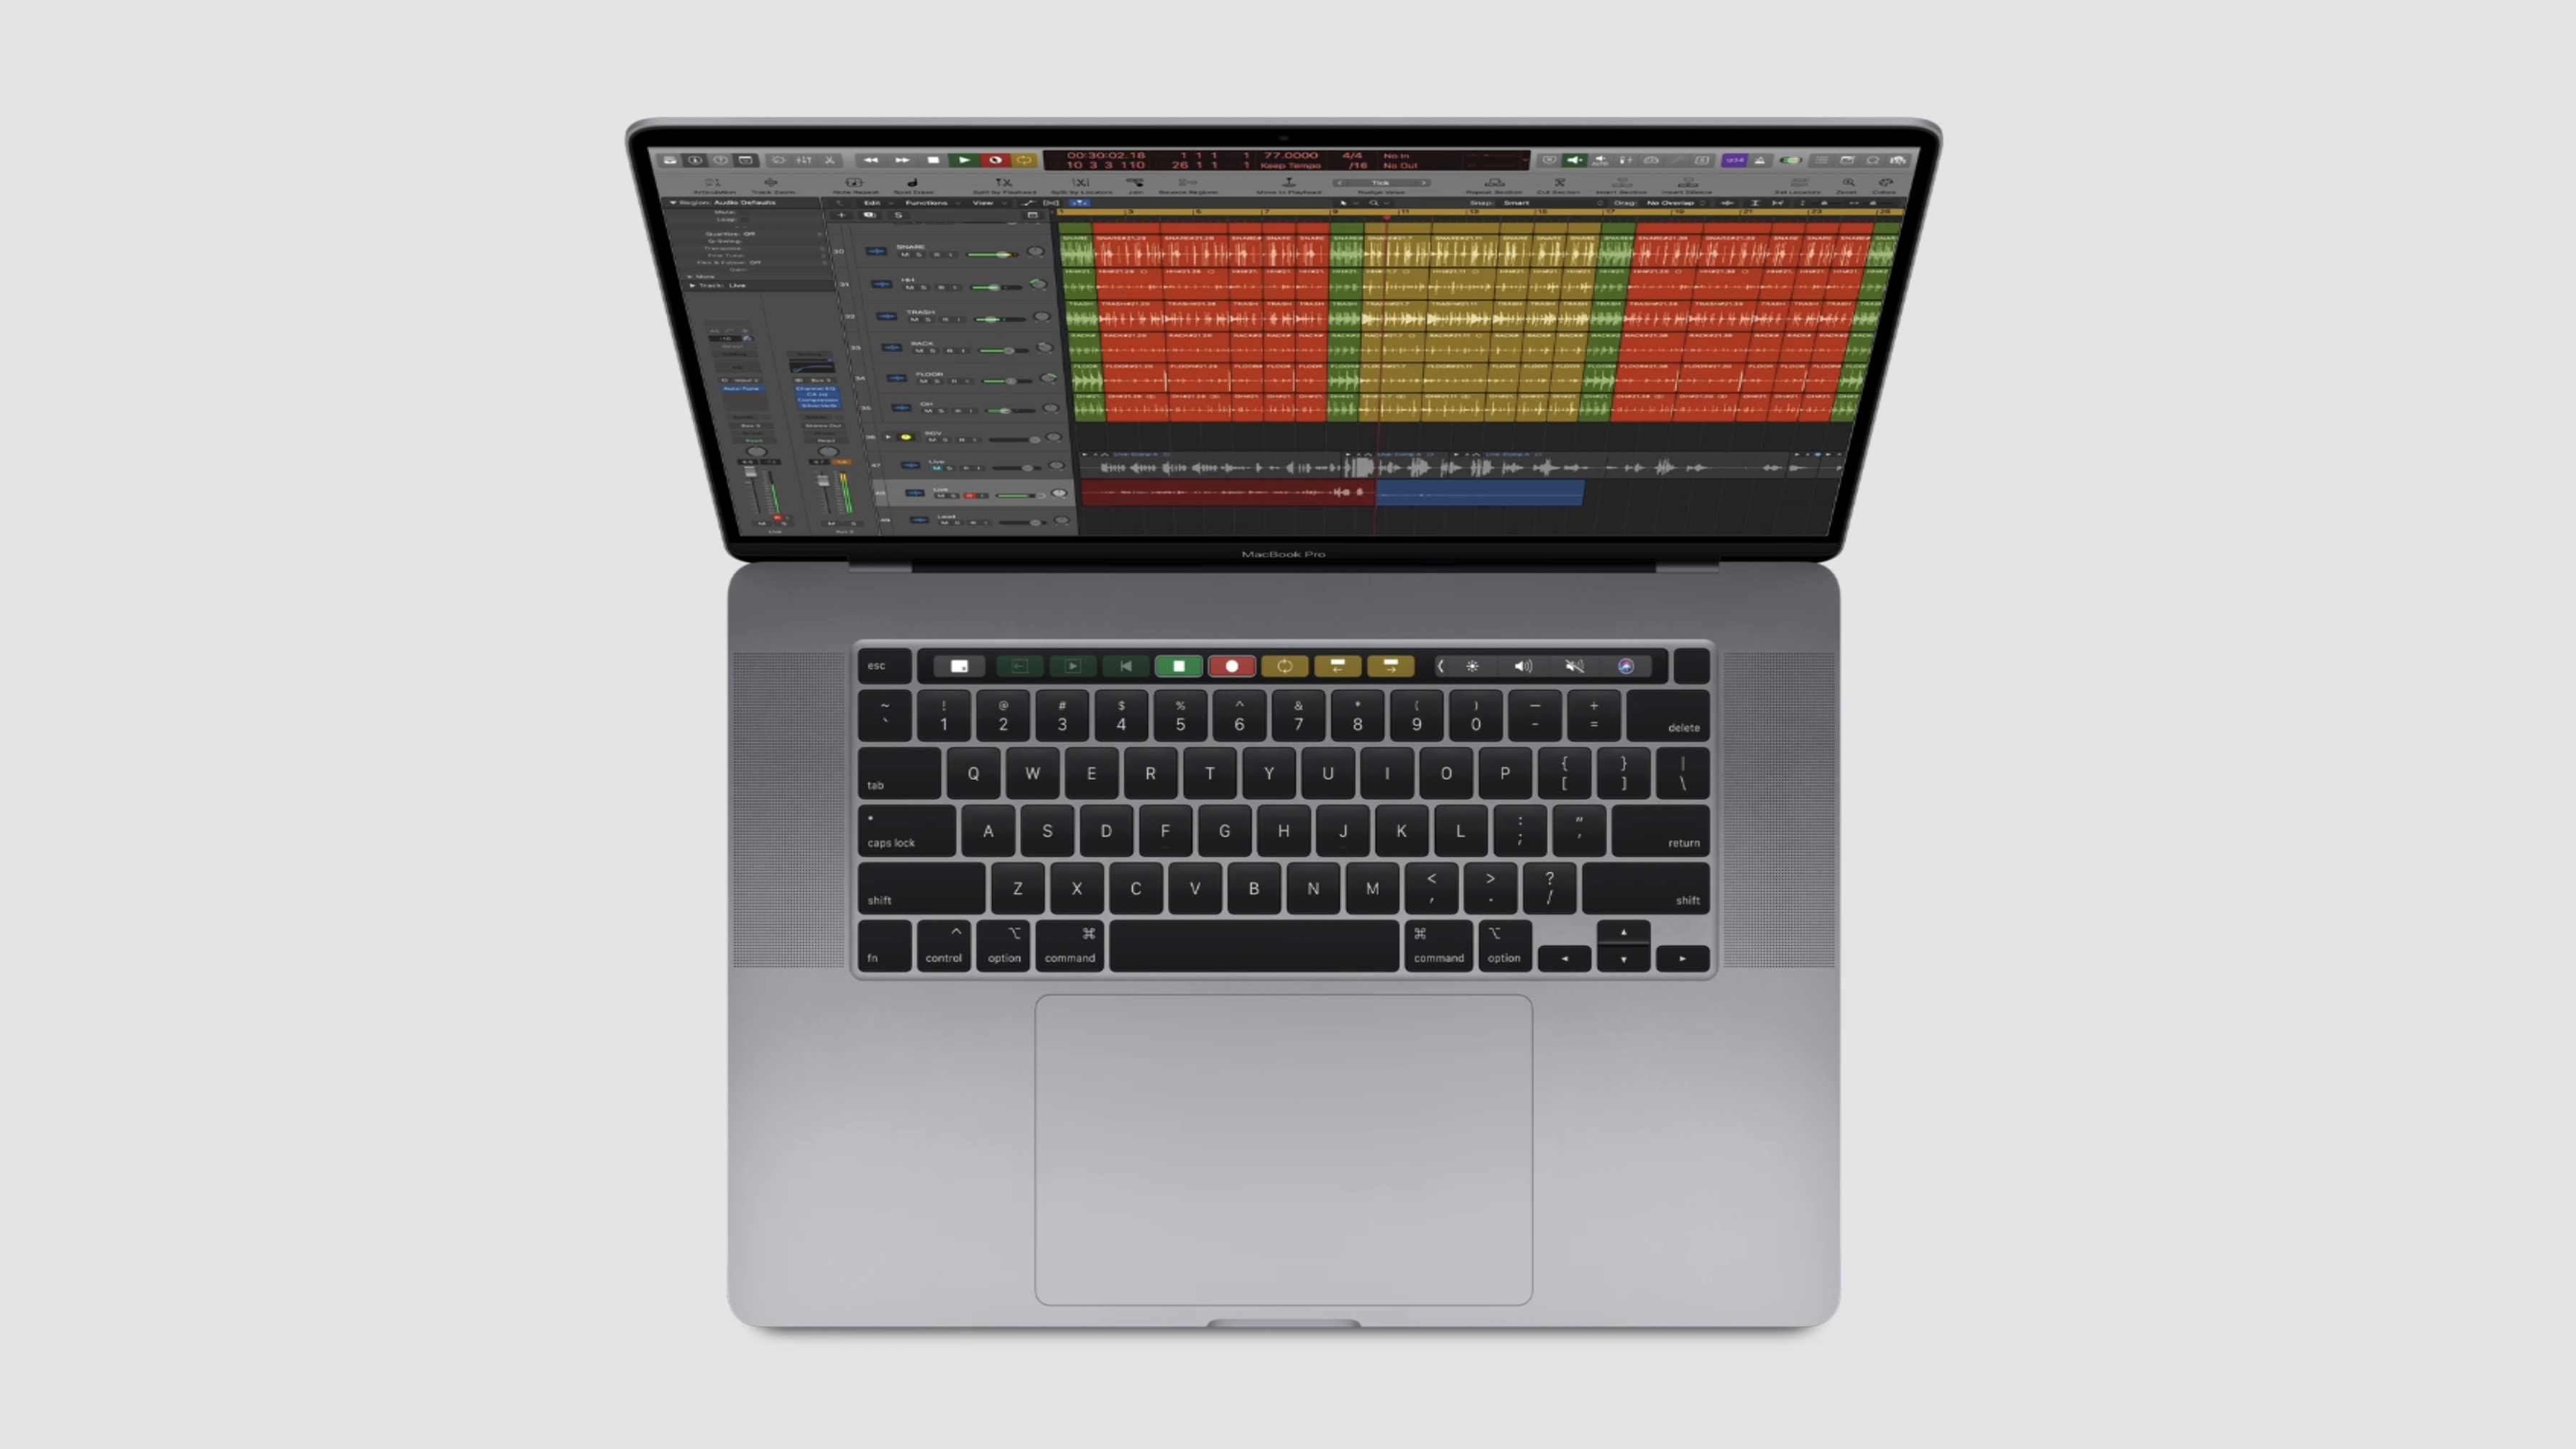 13-inch vs 16-inch MacBook Pro: Which should you buy? - 9to5Mac